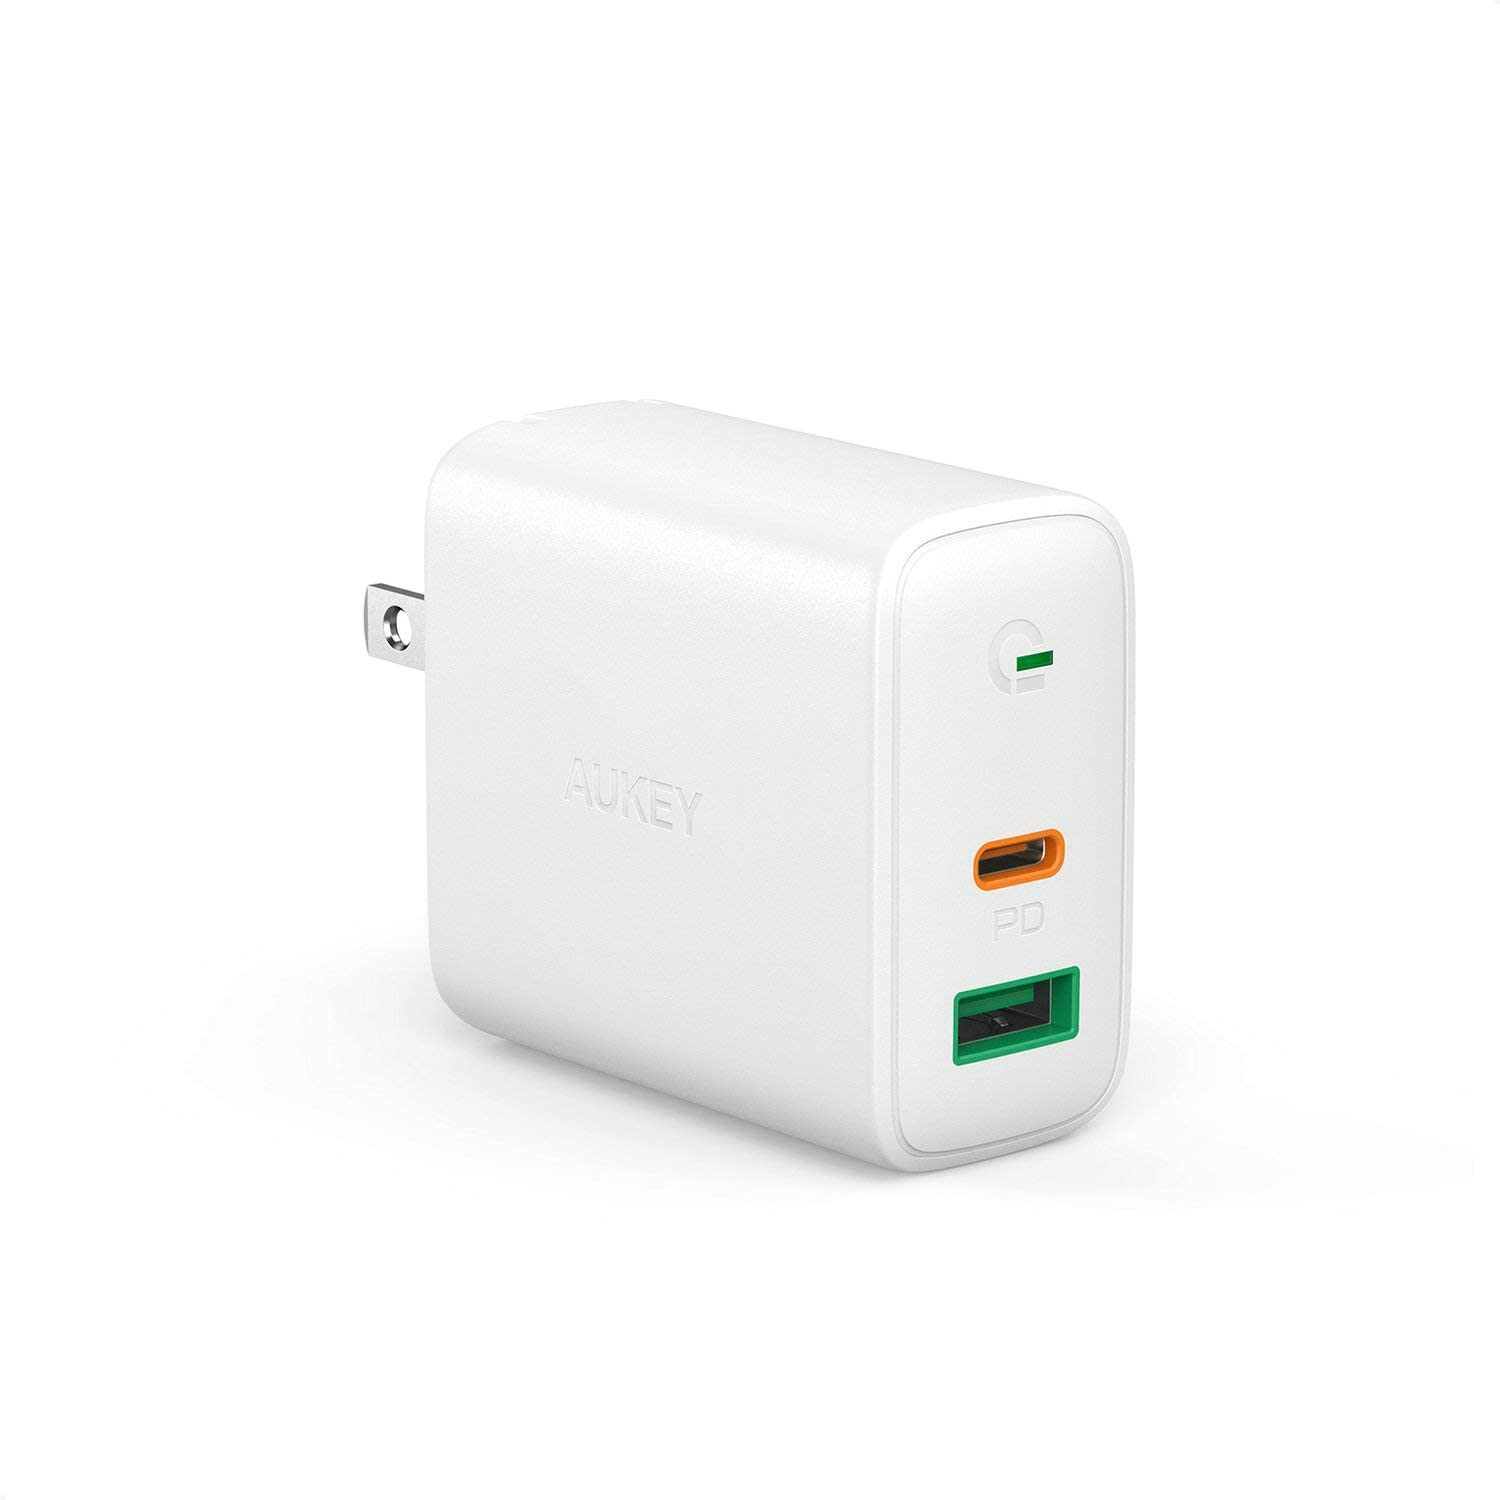 USB C Wall Charger, AUKEY USB C Charger 30W, PD Wall Charger with Power Delivery & Dynamic Detect, Compatible with iPhone 11/11 Pro, MacBook, Nintendo Switch, Airpods Pro and More